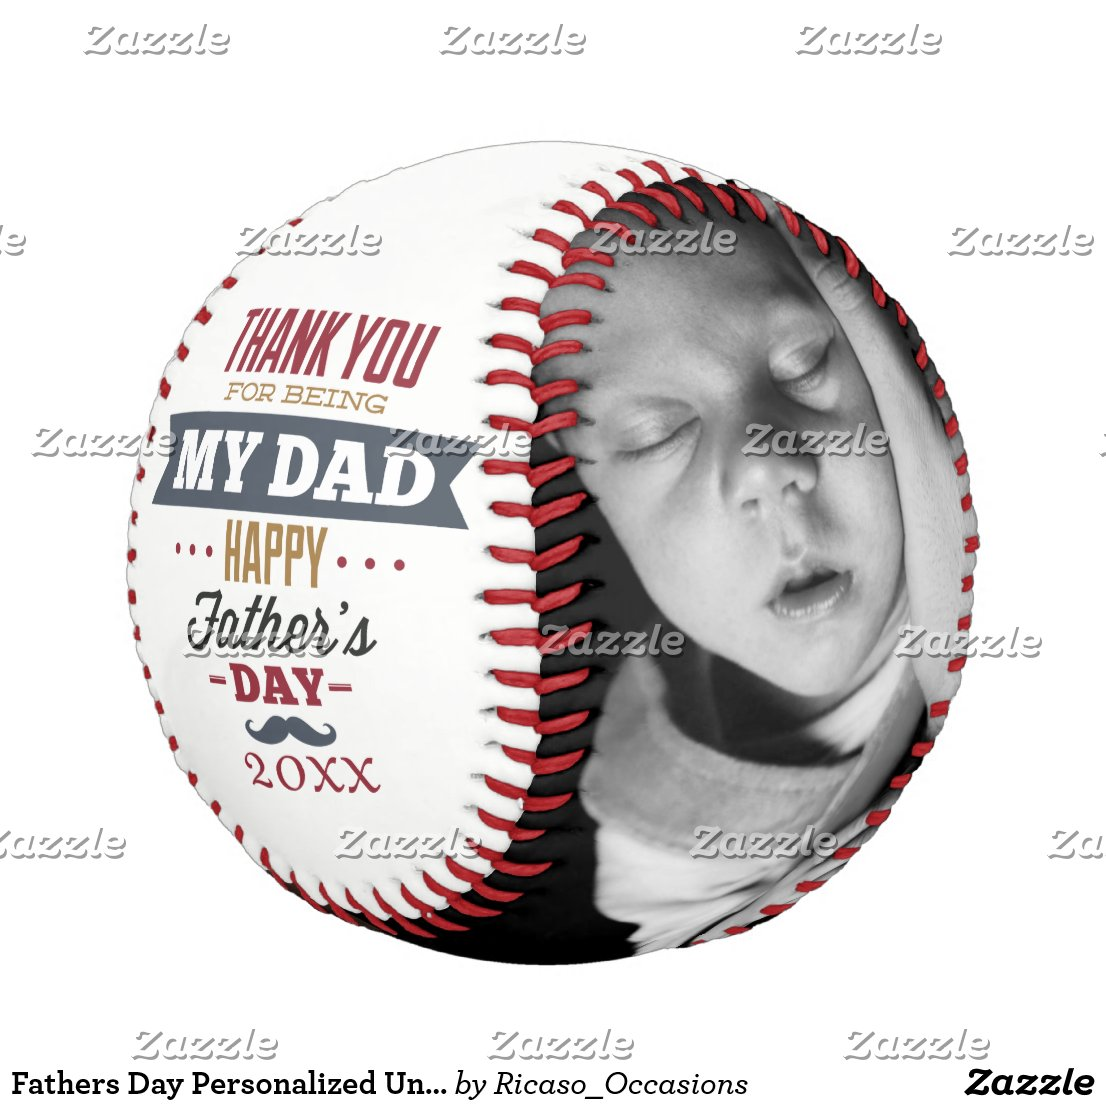 Fathers Day Personalized Unique One Of A Kind Baseball